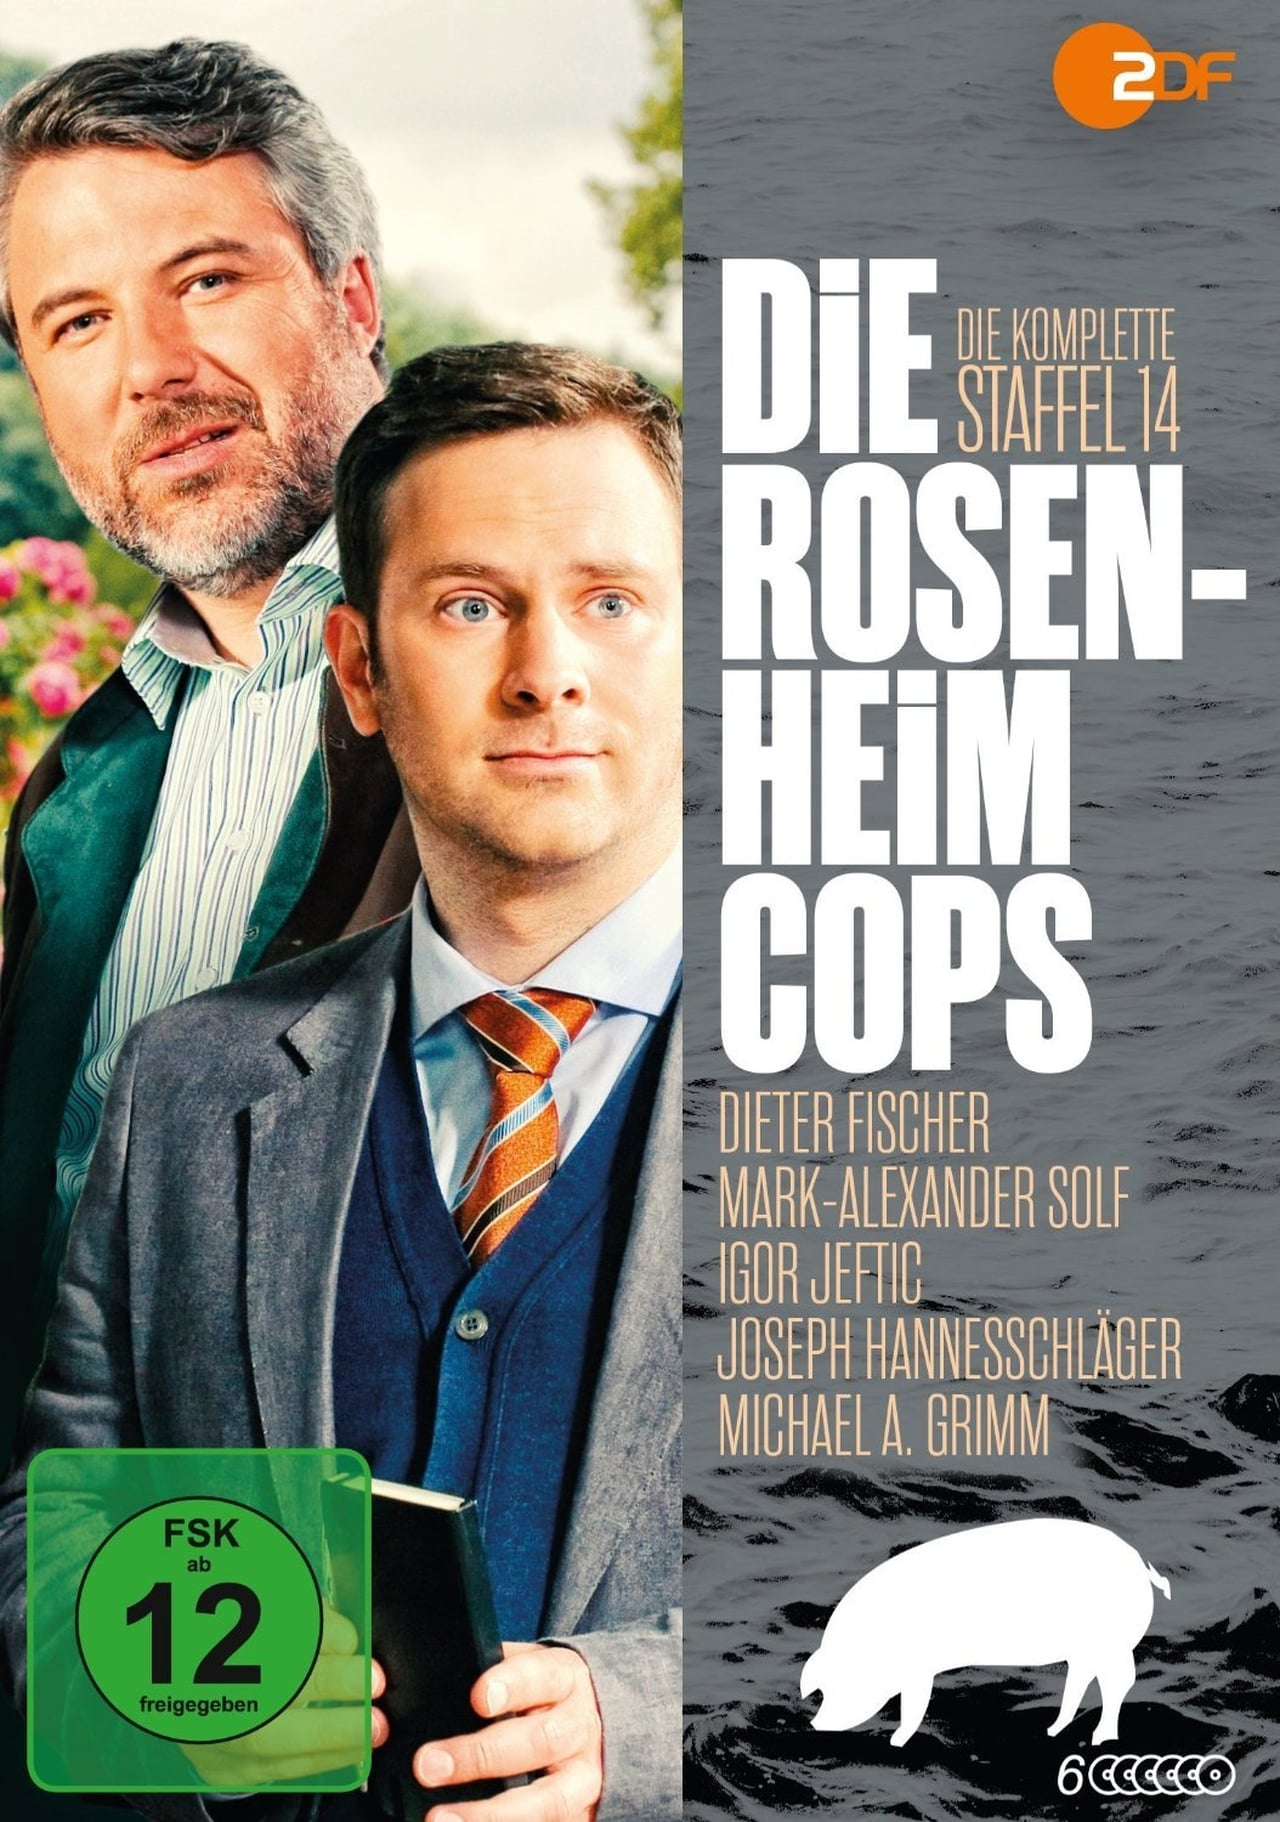 Putlocker The Rosenheim Cops Season 14 (2014)